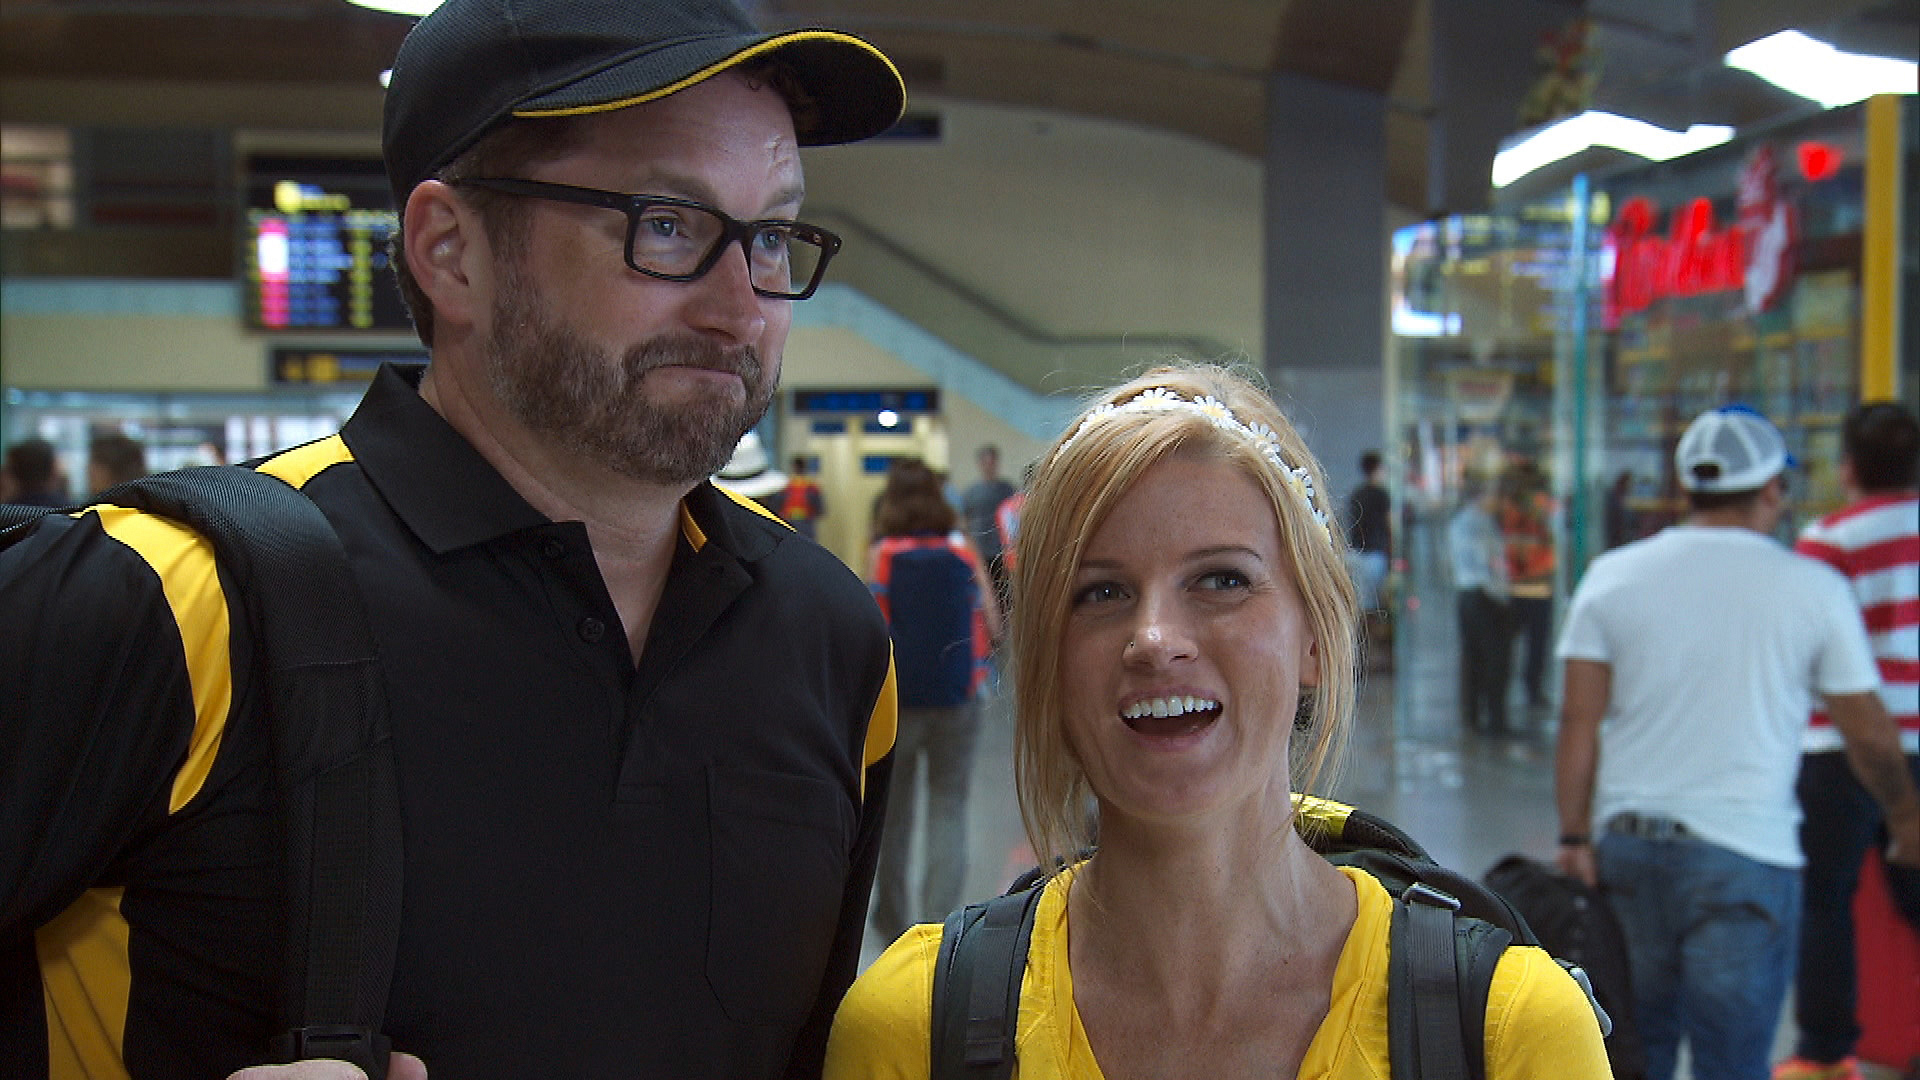 Burnie and Ashley make their way from Cartagena, Colombia, to Geneva, Switzerland.